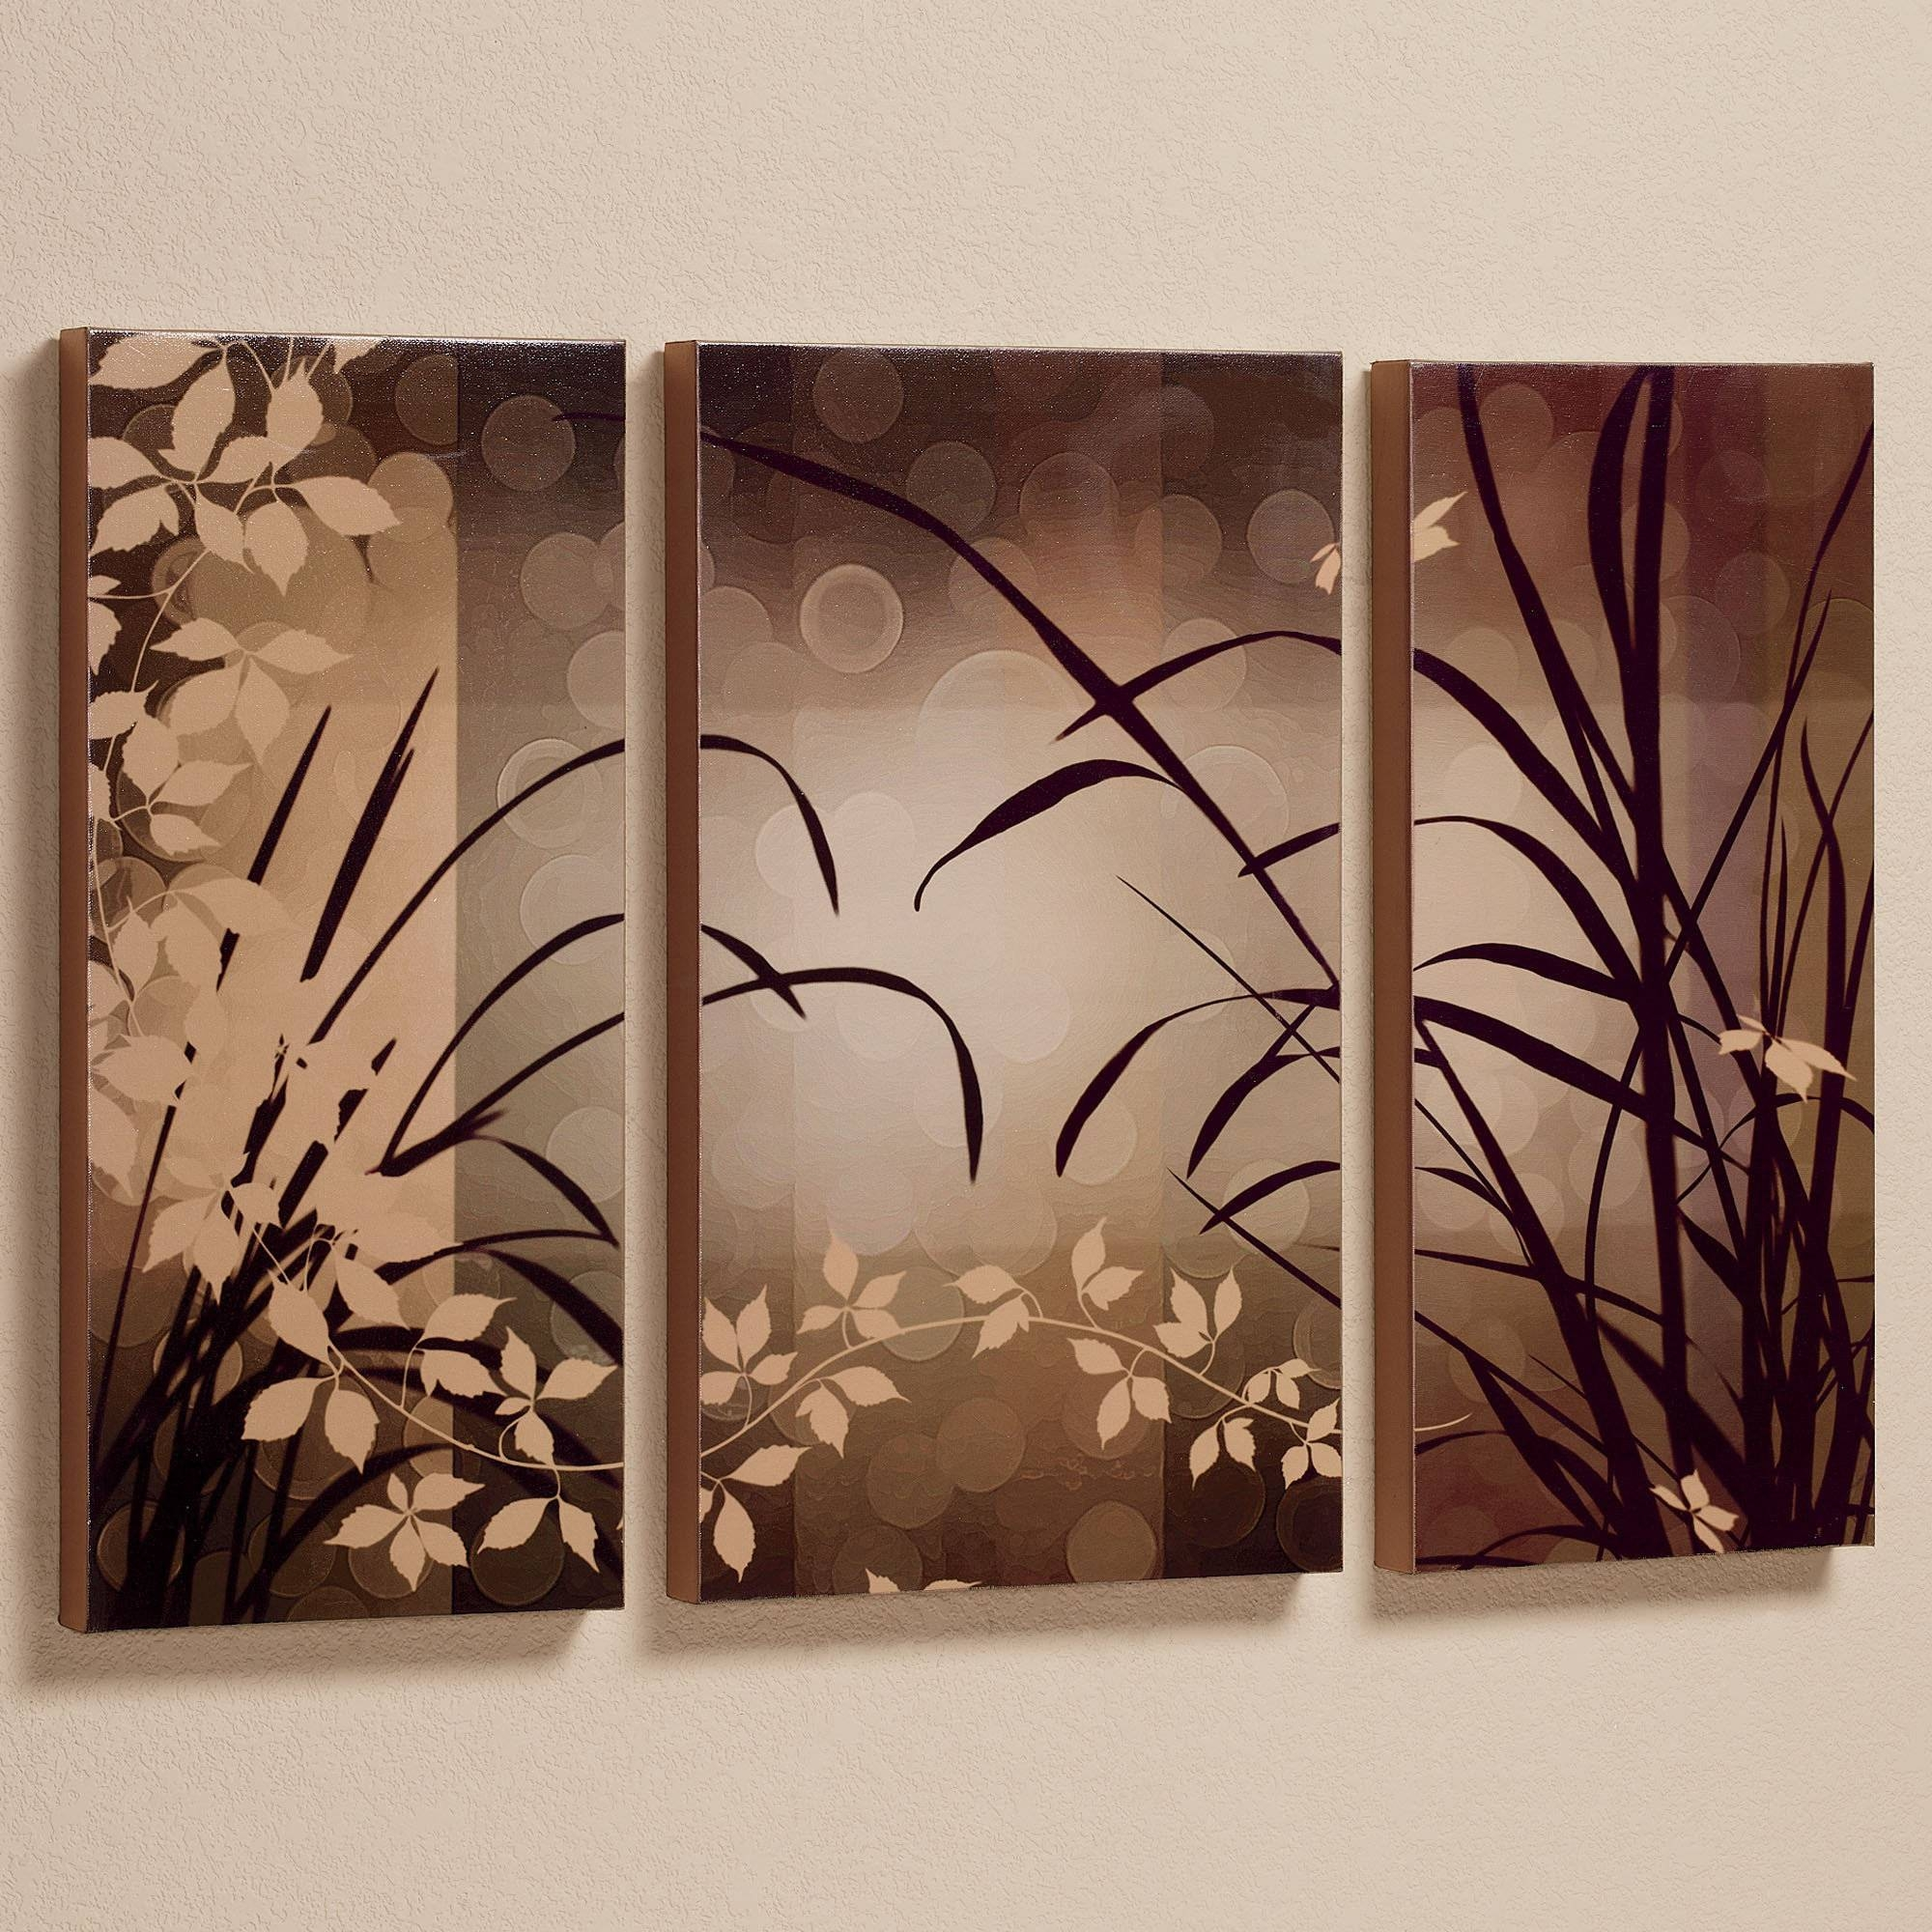 Fresh Design Canvas Wall Art Sets Interesting Matching Sets Store With Recent Matching Canvas Wall Art (View 10 of 20)